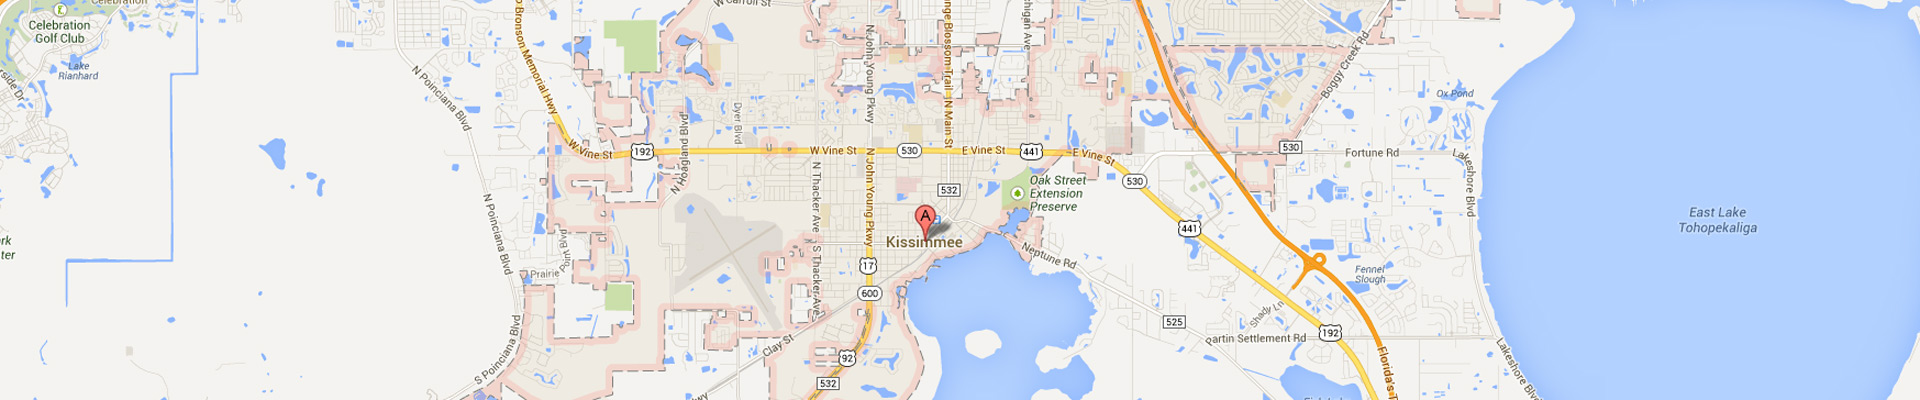 Kissimmee Subway Locations